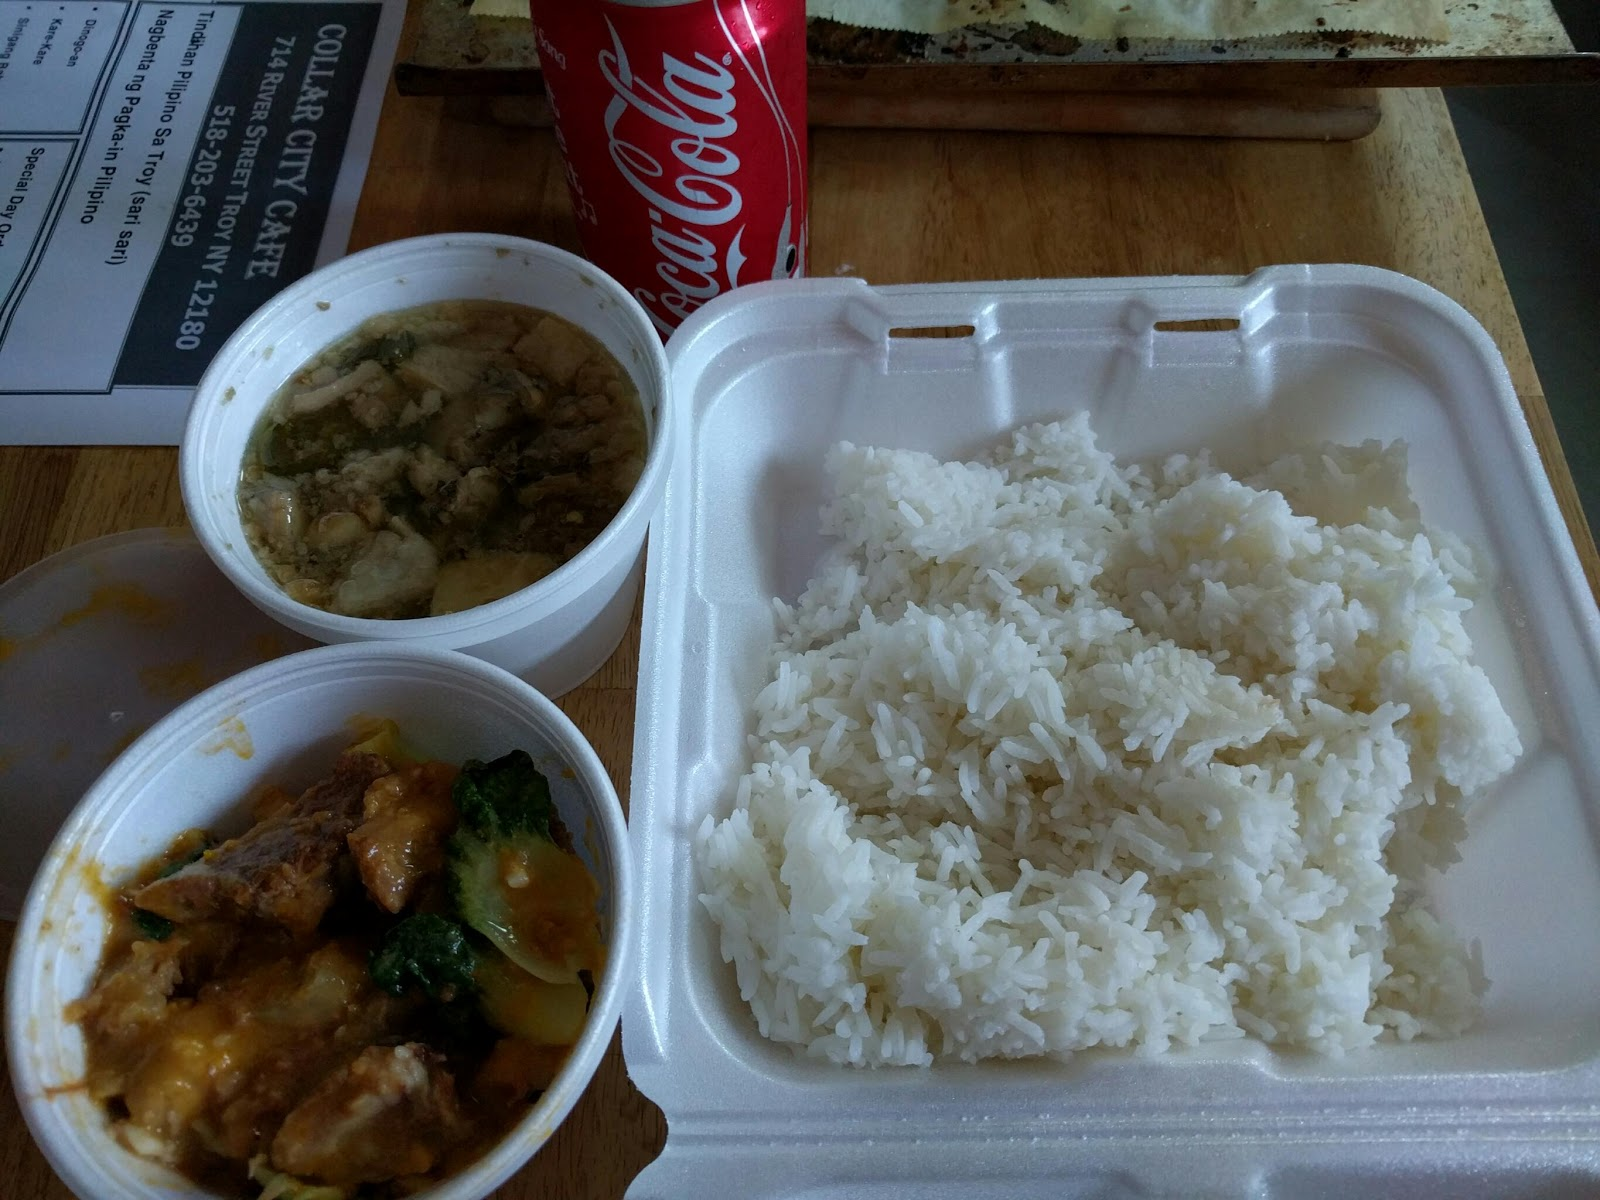 Under The Copper Tree: Filipino Food Has Arrived in the